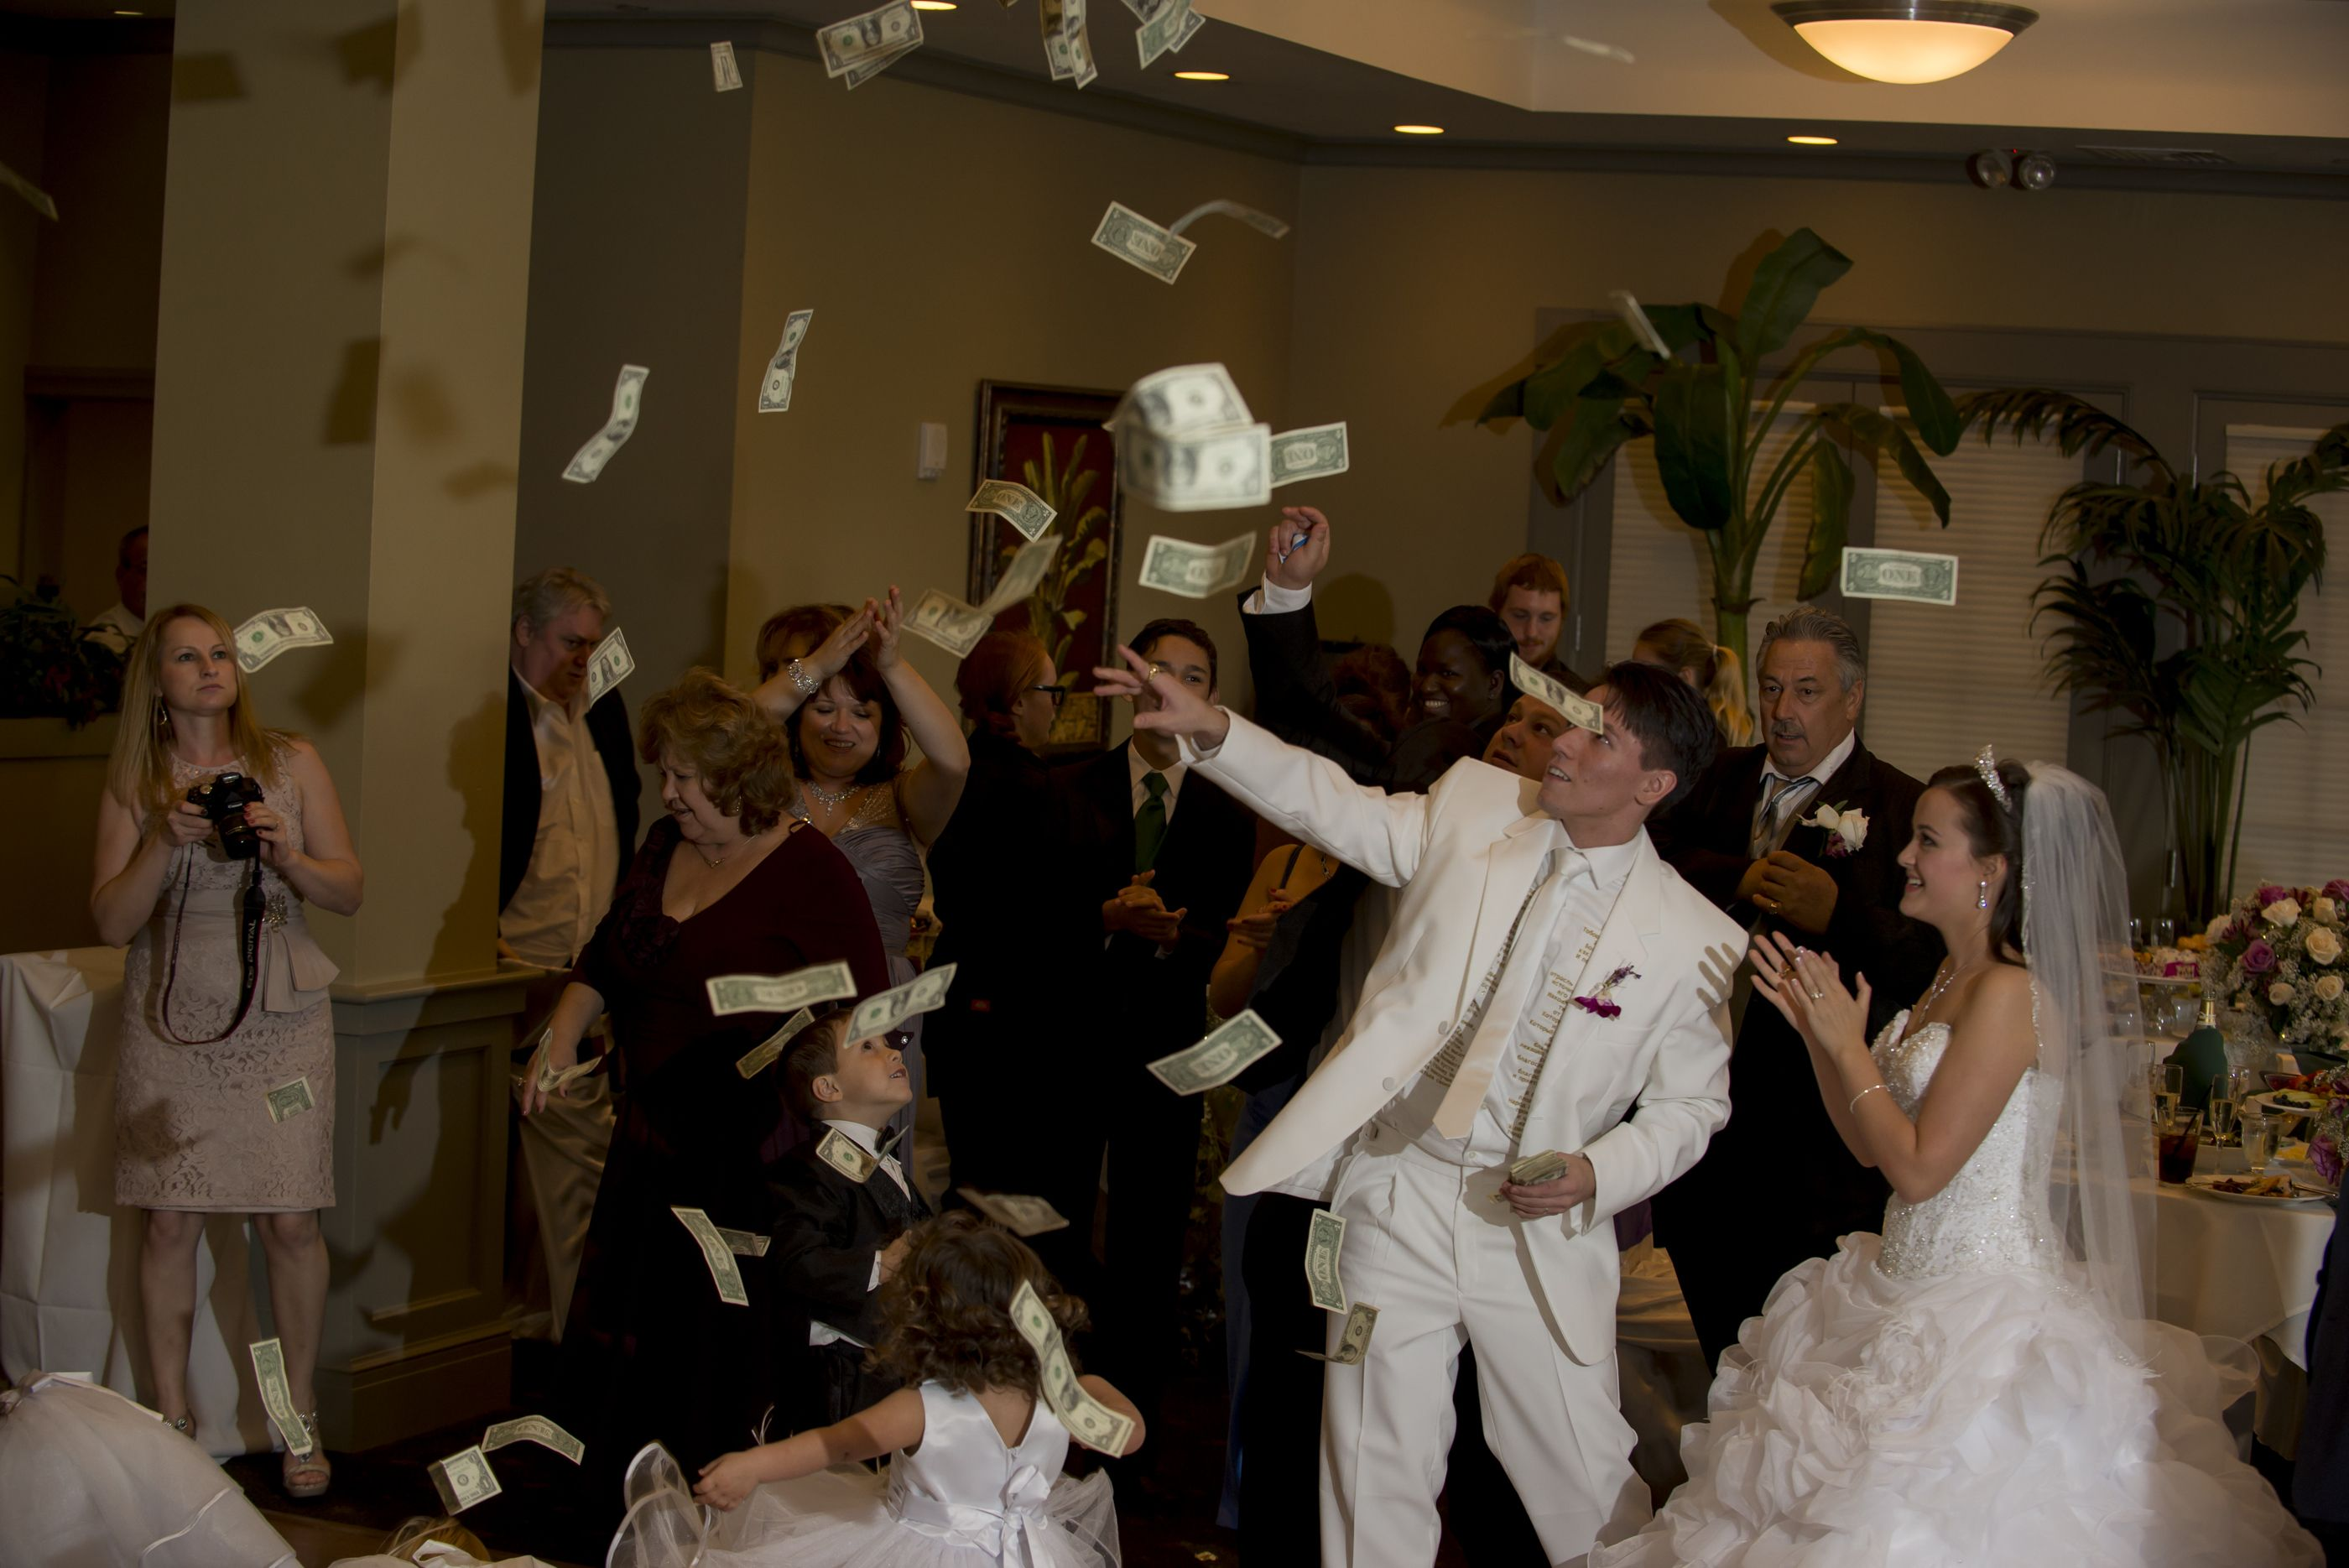 Money Everywhere On This Russian Christian Wedding Similiar To Greek And Other Eastern Orthodox